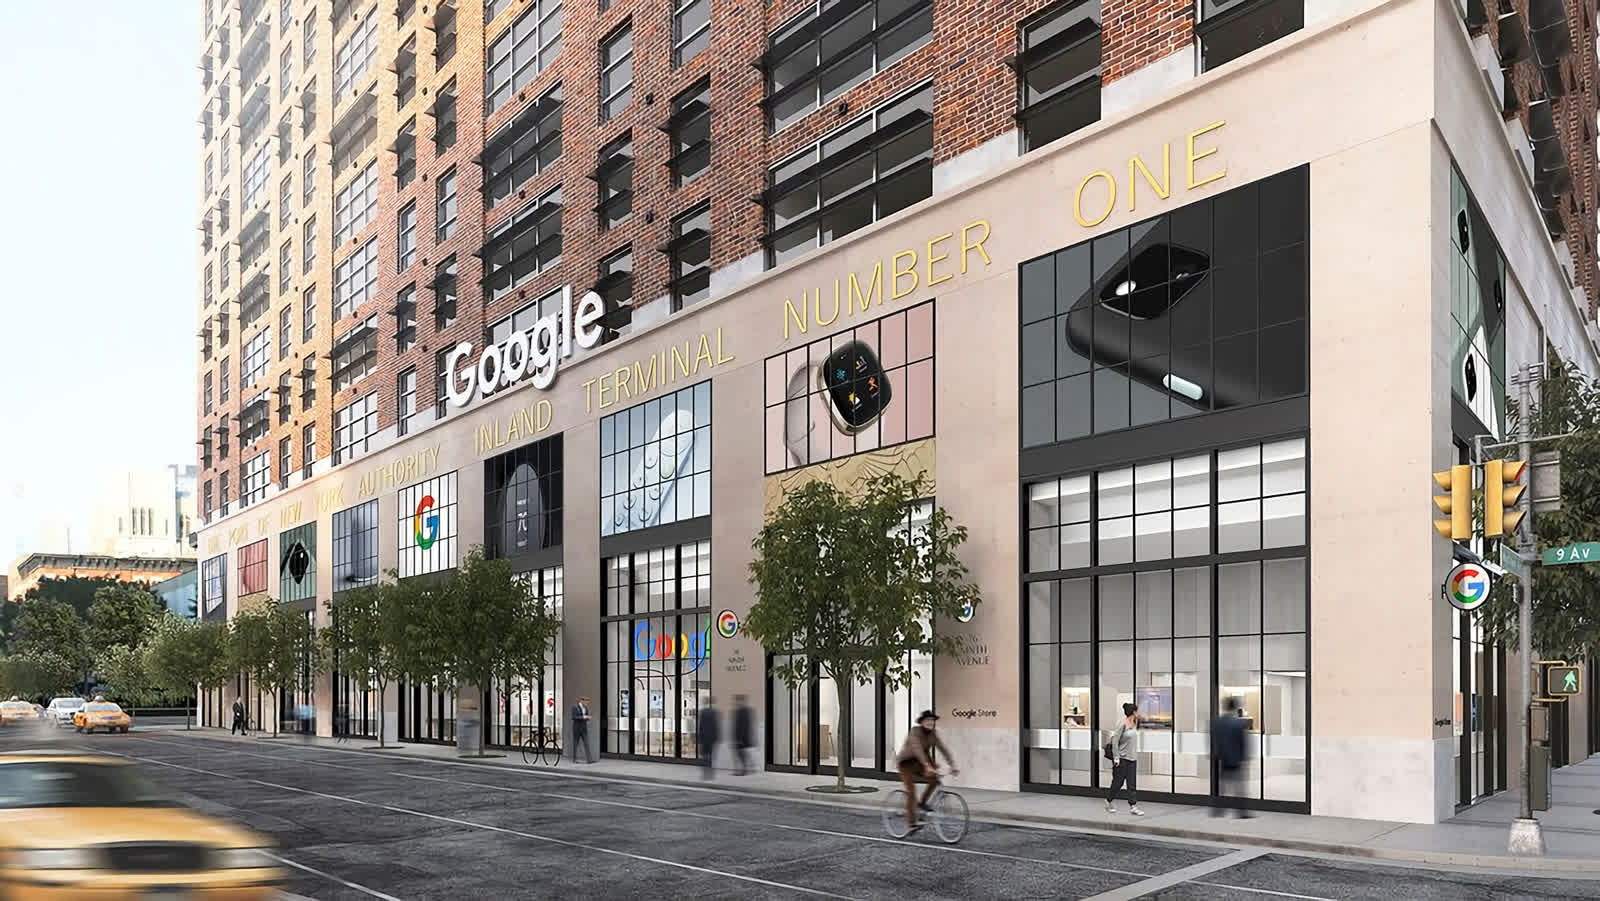 <p>Google is Launching its Original physical retail store in New York this summer thumbnail